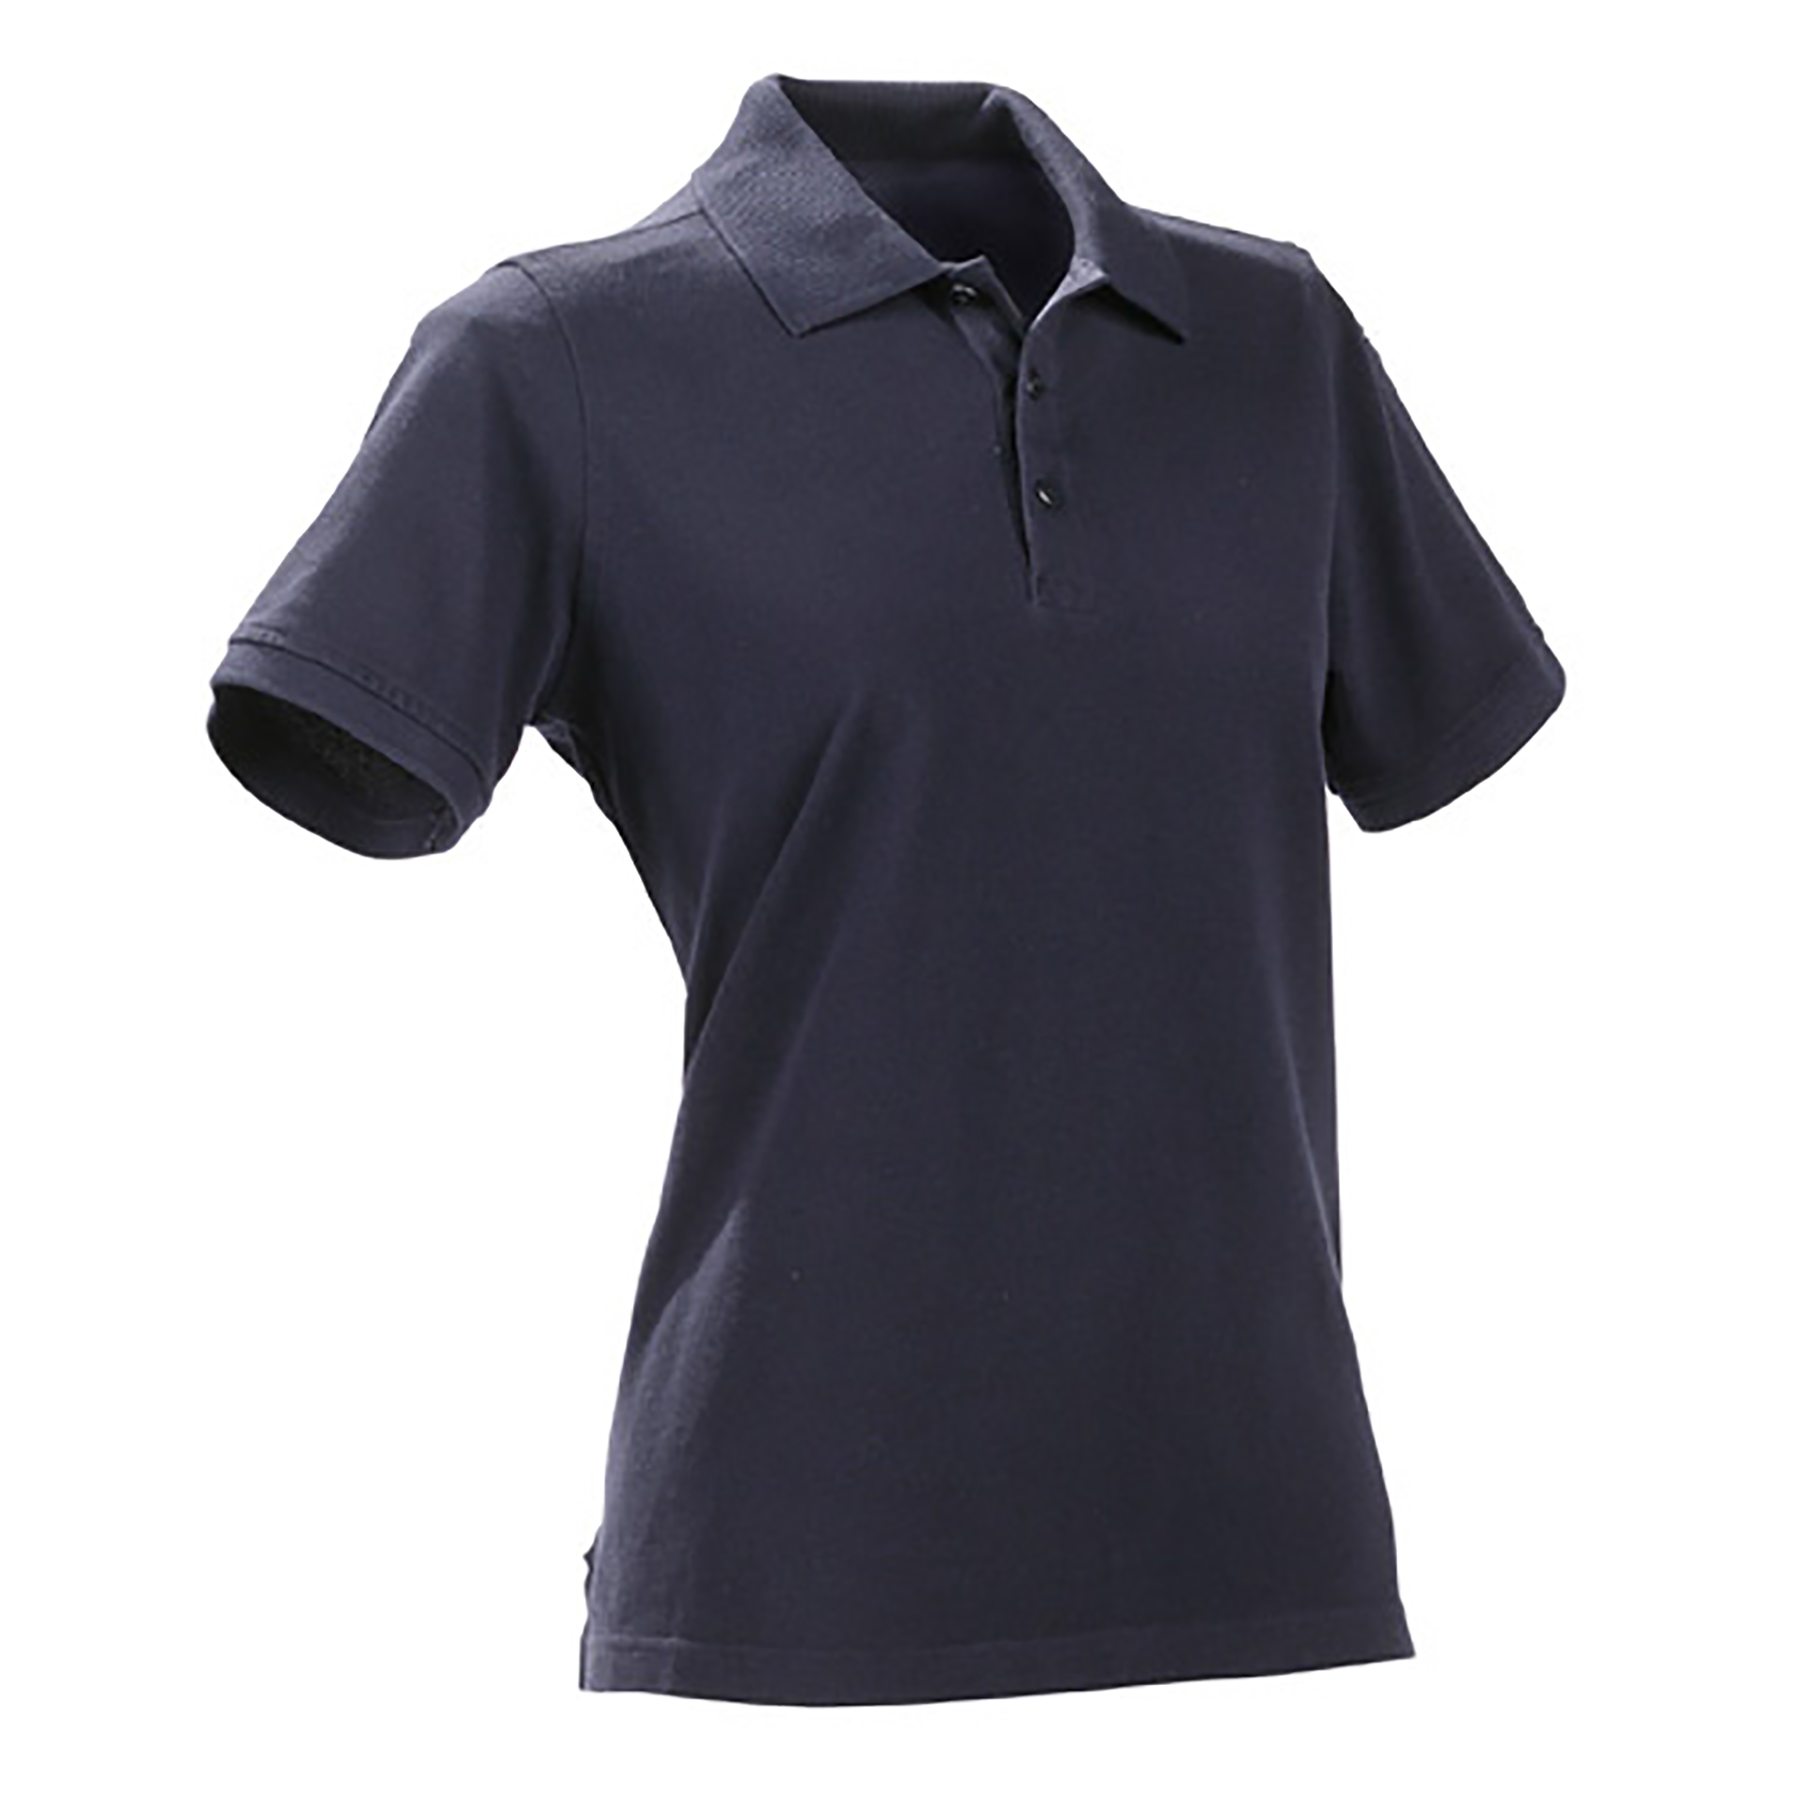 e7d88e4f 5.11 Tactical Women's Professional Polo at Patriot Outfitters